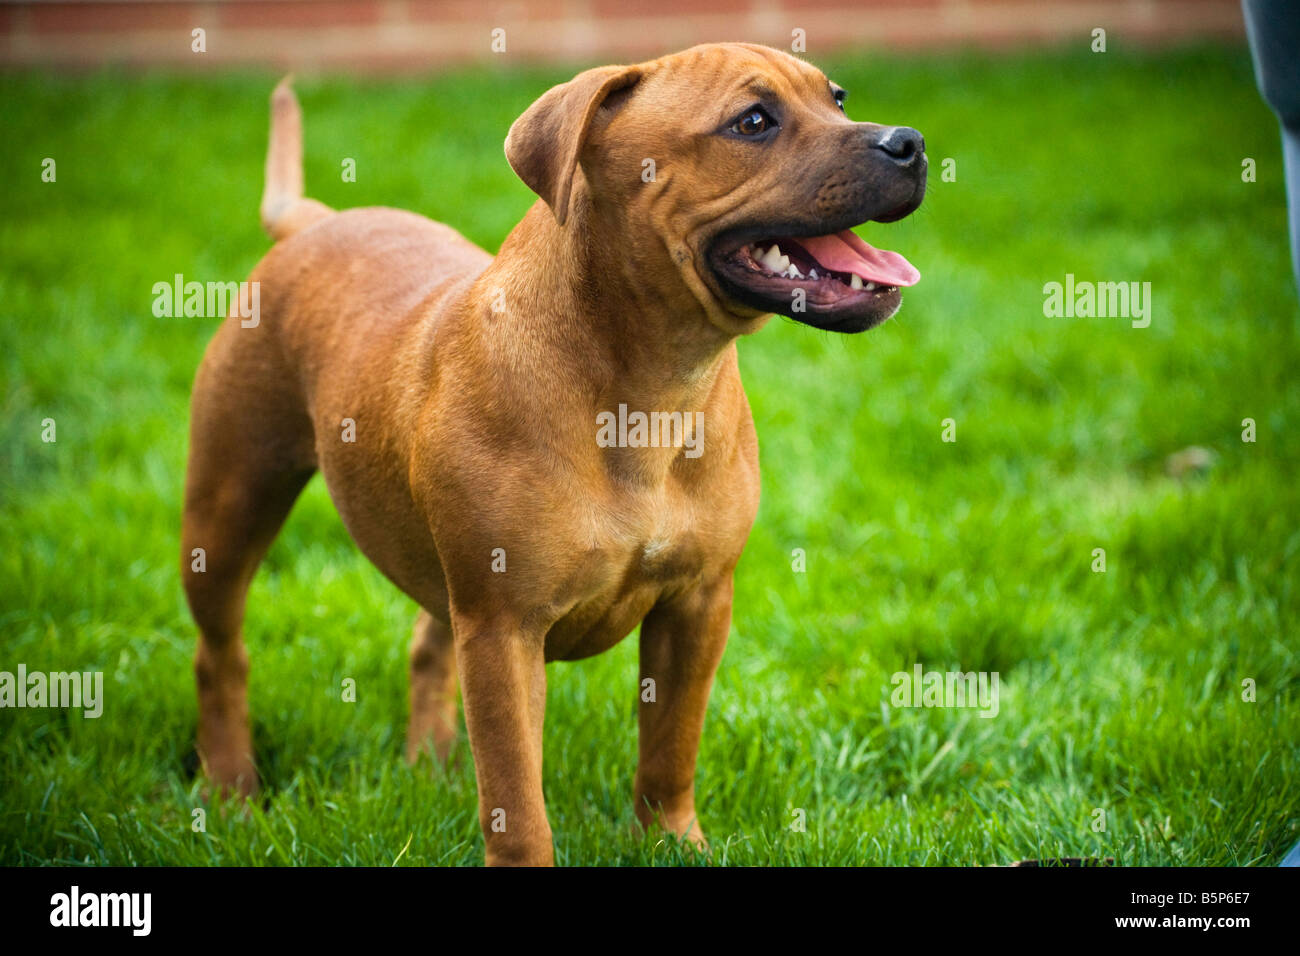 A proud Staffordshire Bull terrier posing on the lawn Stock Photo